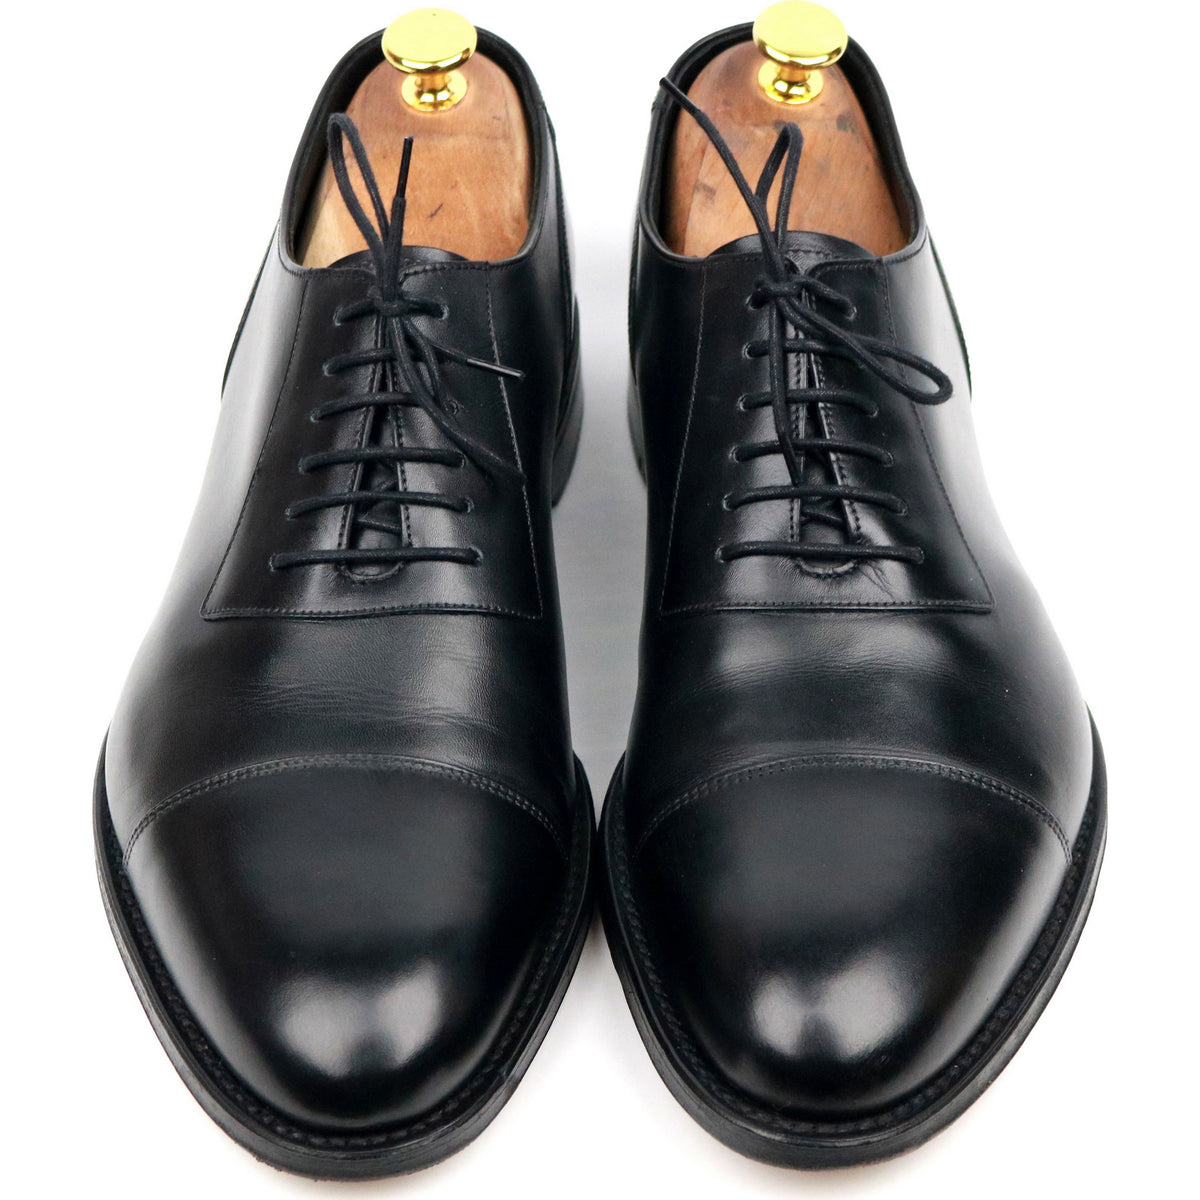 Loake 1880 'Churchill' Black Leather Oxford UK 8.5 F